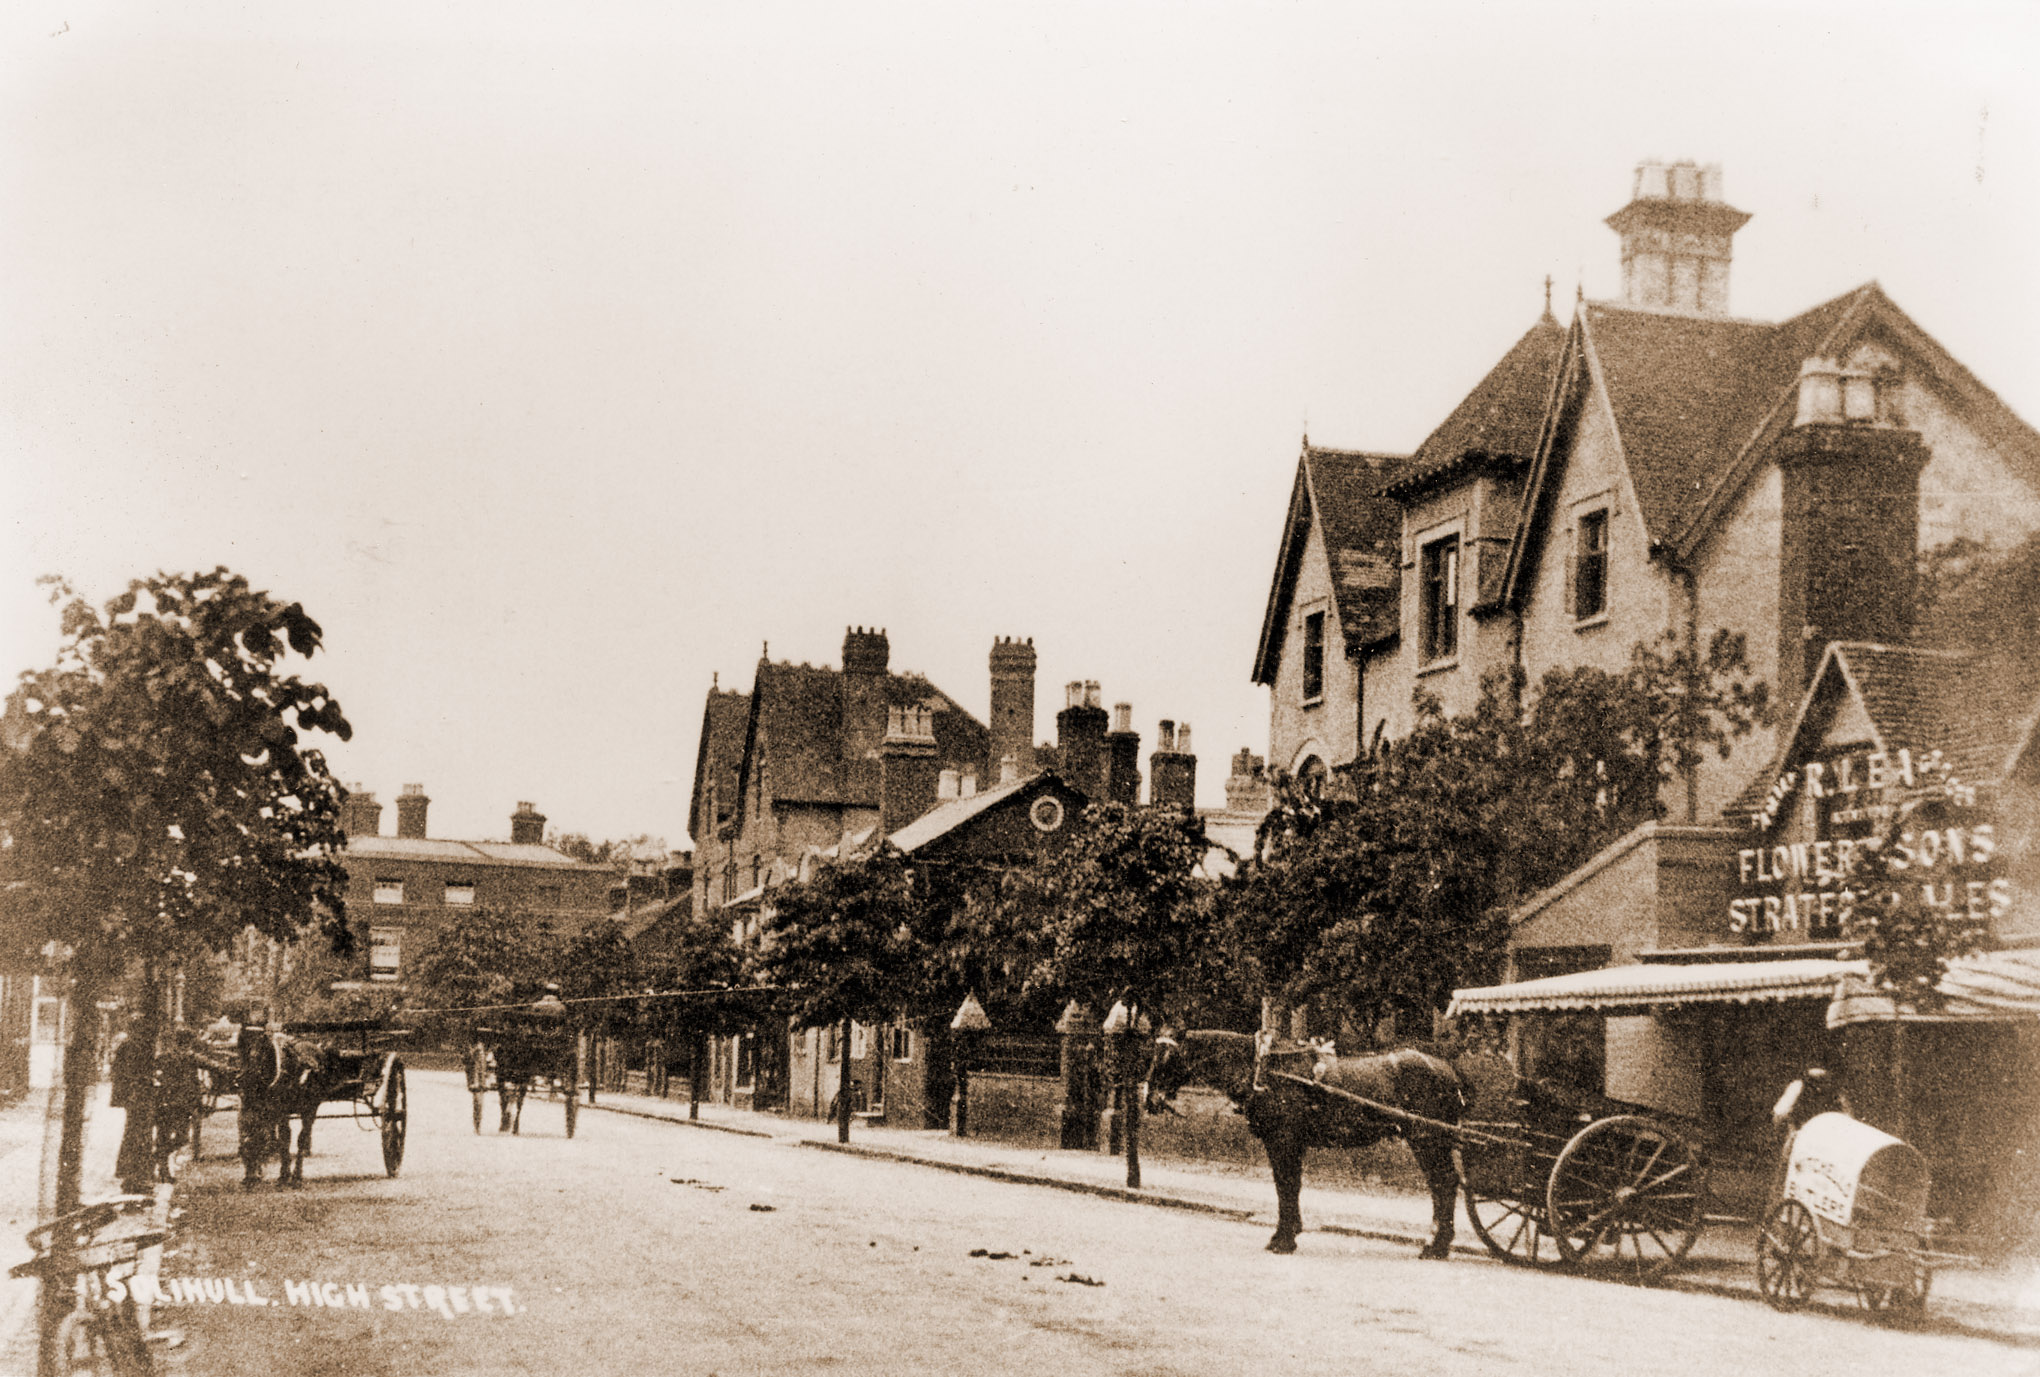 The building on the right, next to Lea's, was The Gables, home to Dr A. V. Bernays (1857-1938). It was demolished c.1935 and shops, including Woolworth's (now Robert Dyas) were built on the site.